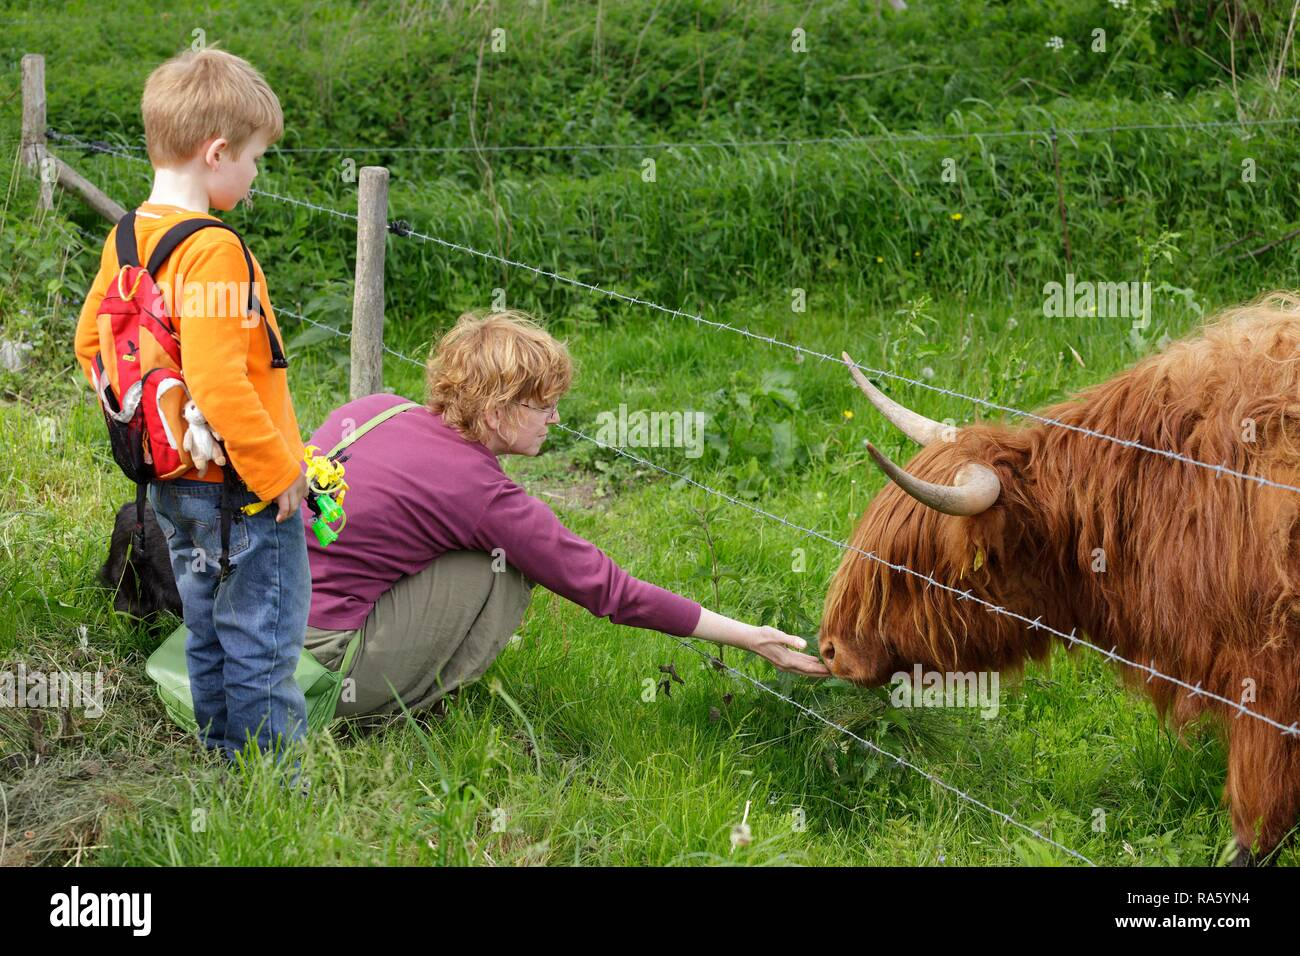 Woman stroking a Highland Cattle with a boy watching, Haithabu, Schleswig-Holstein, Germany - Stock Image